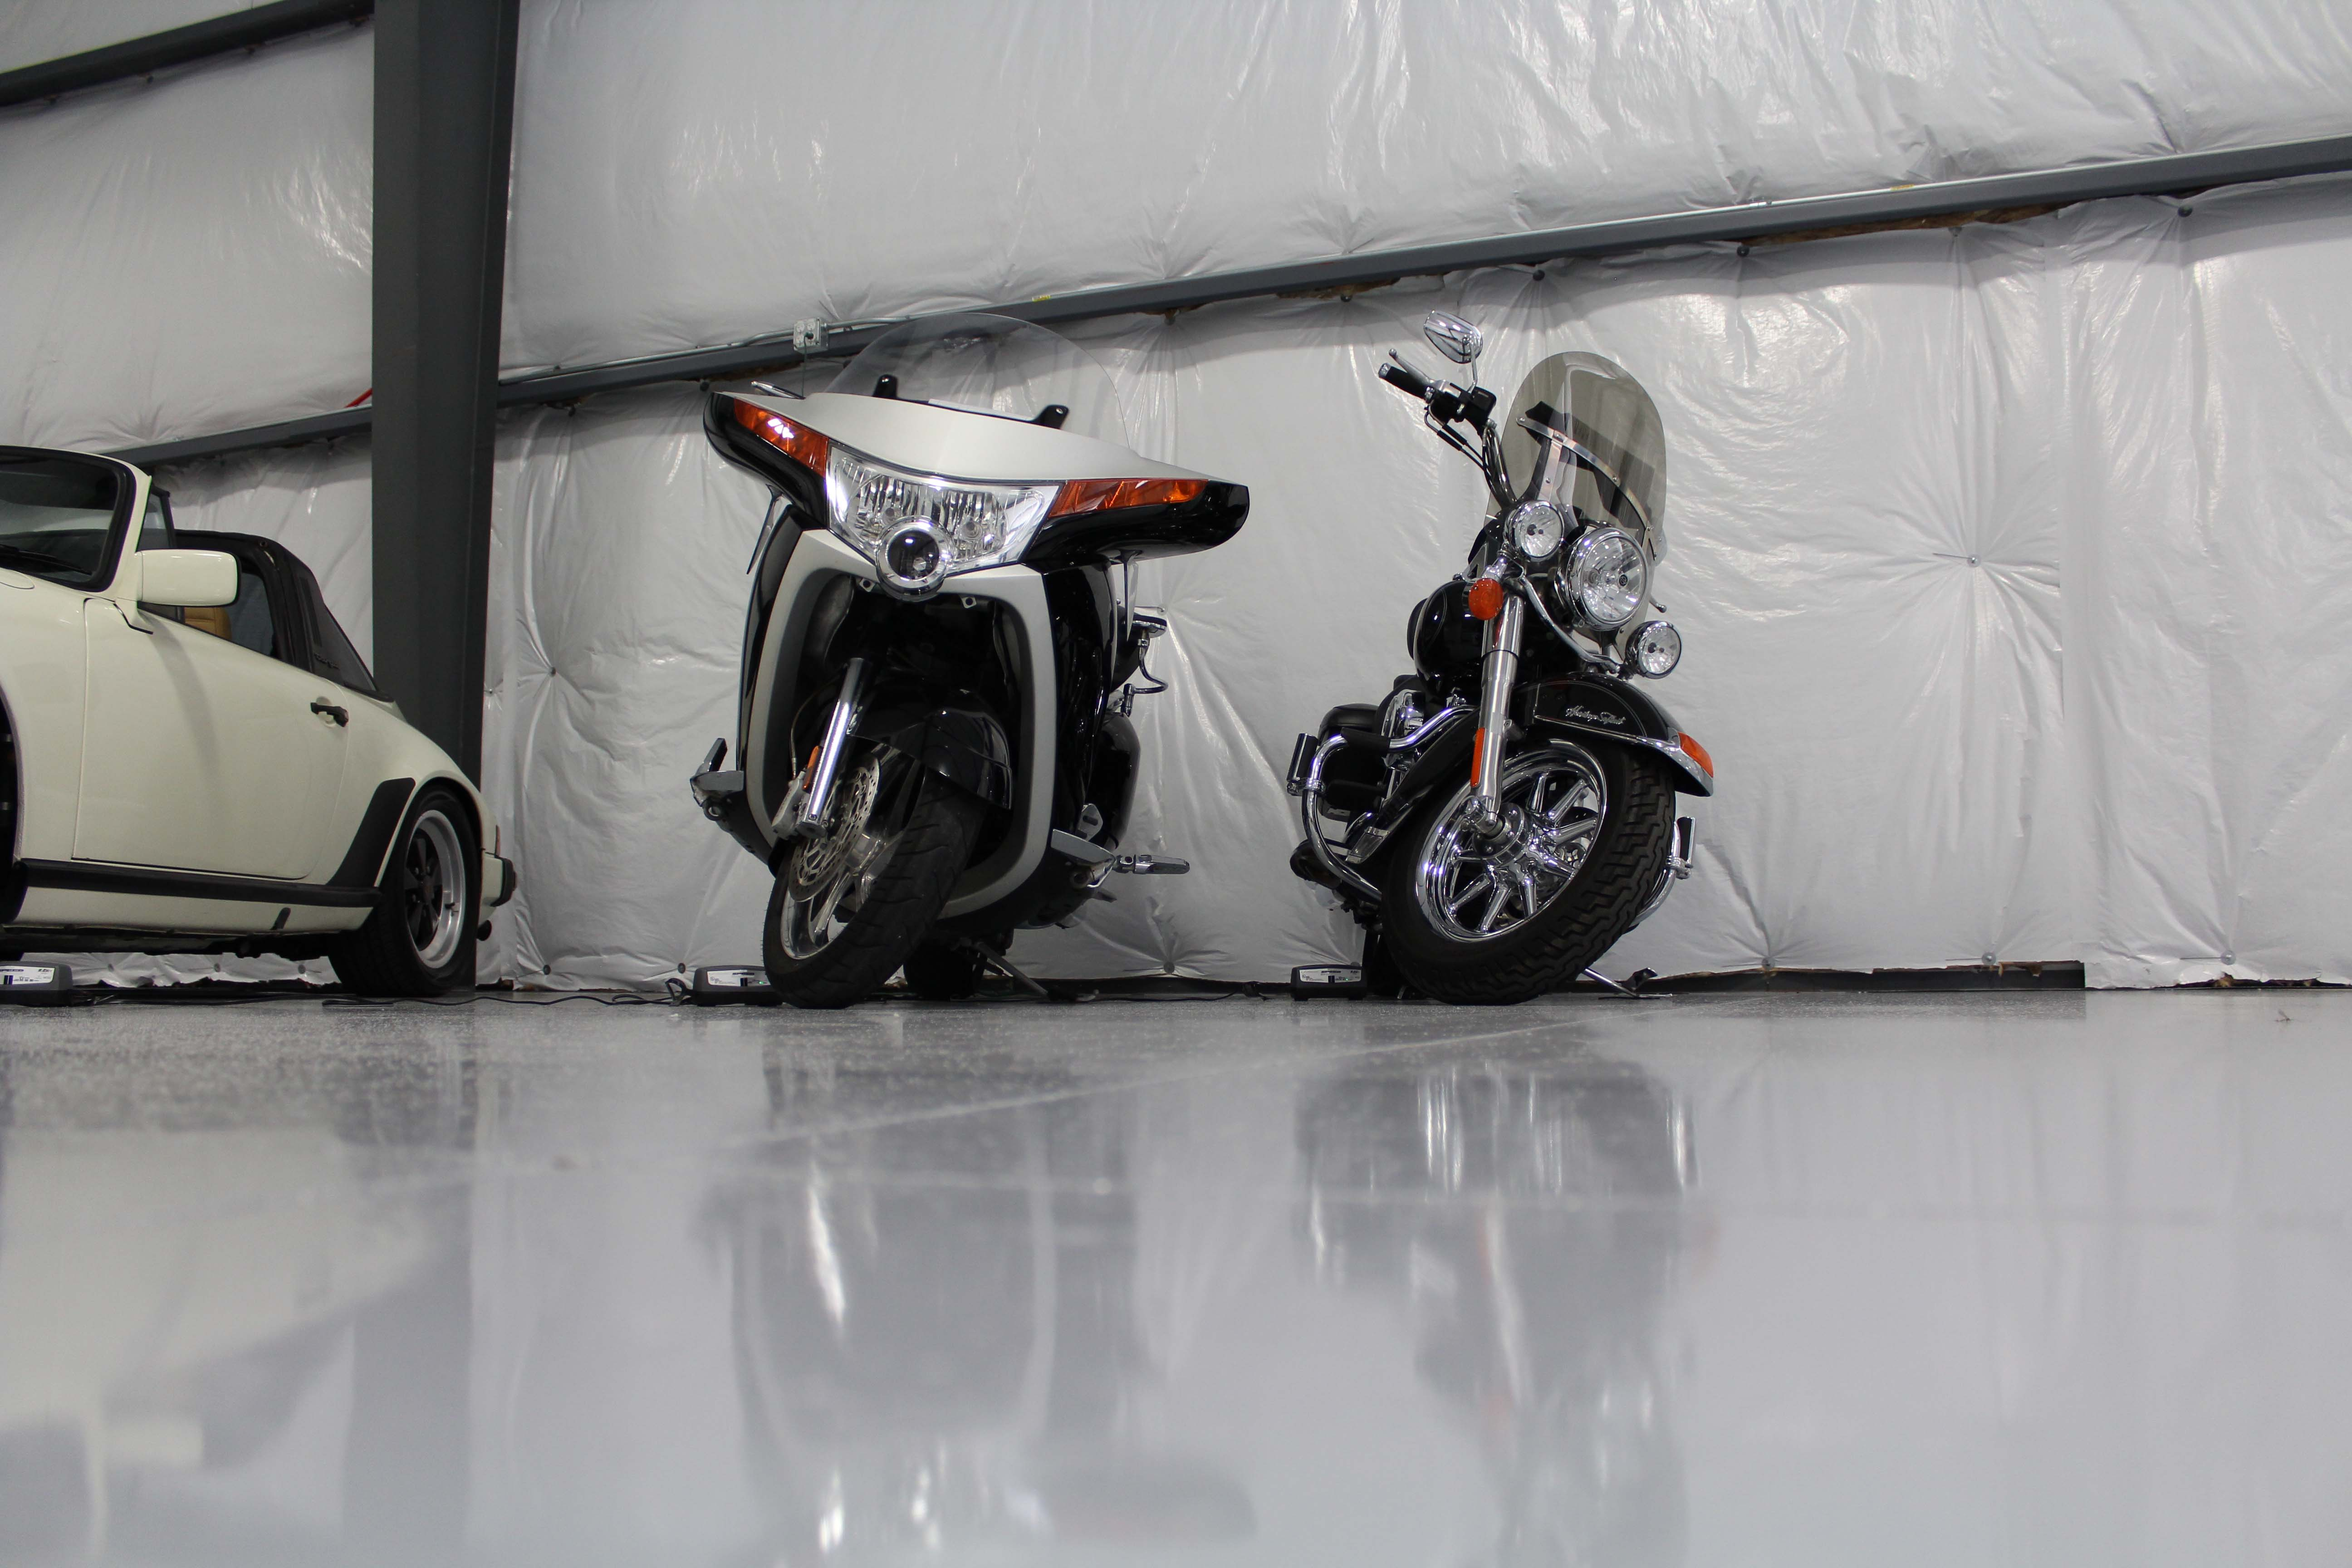 Floor Angle of Motorcycles